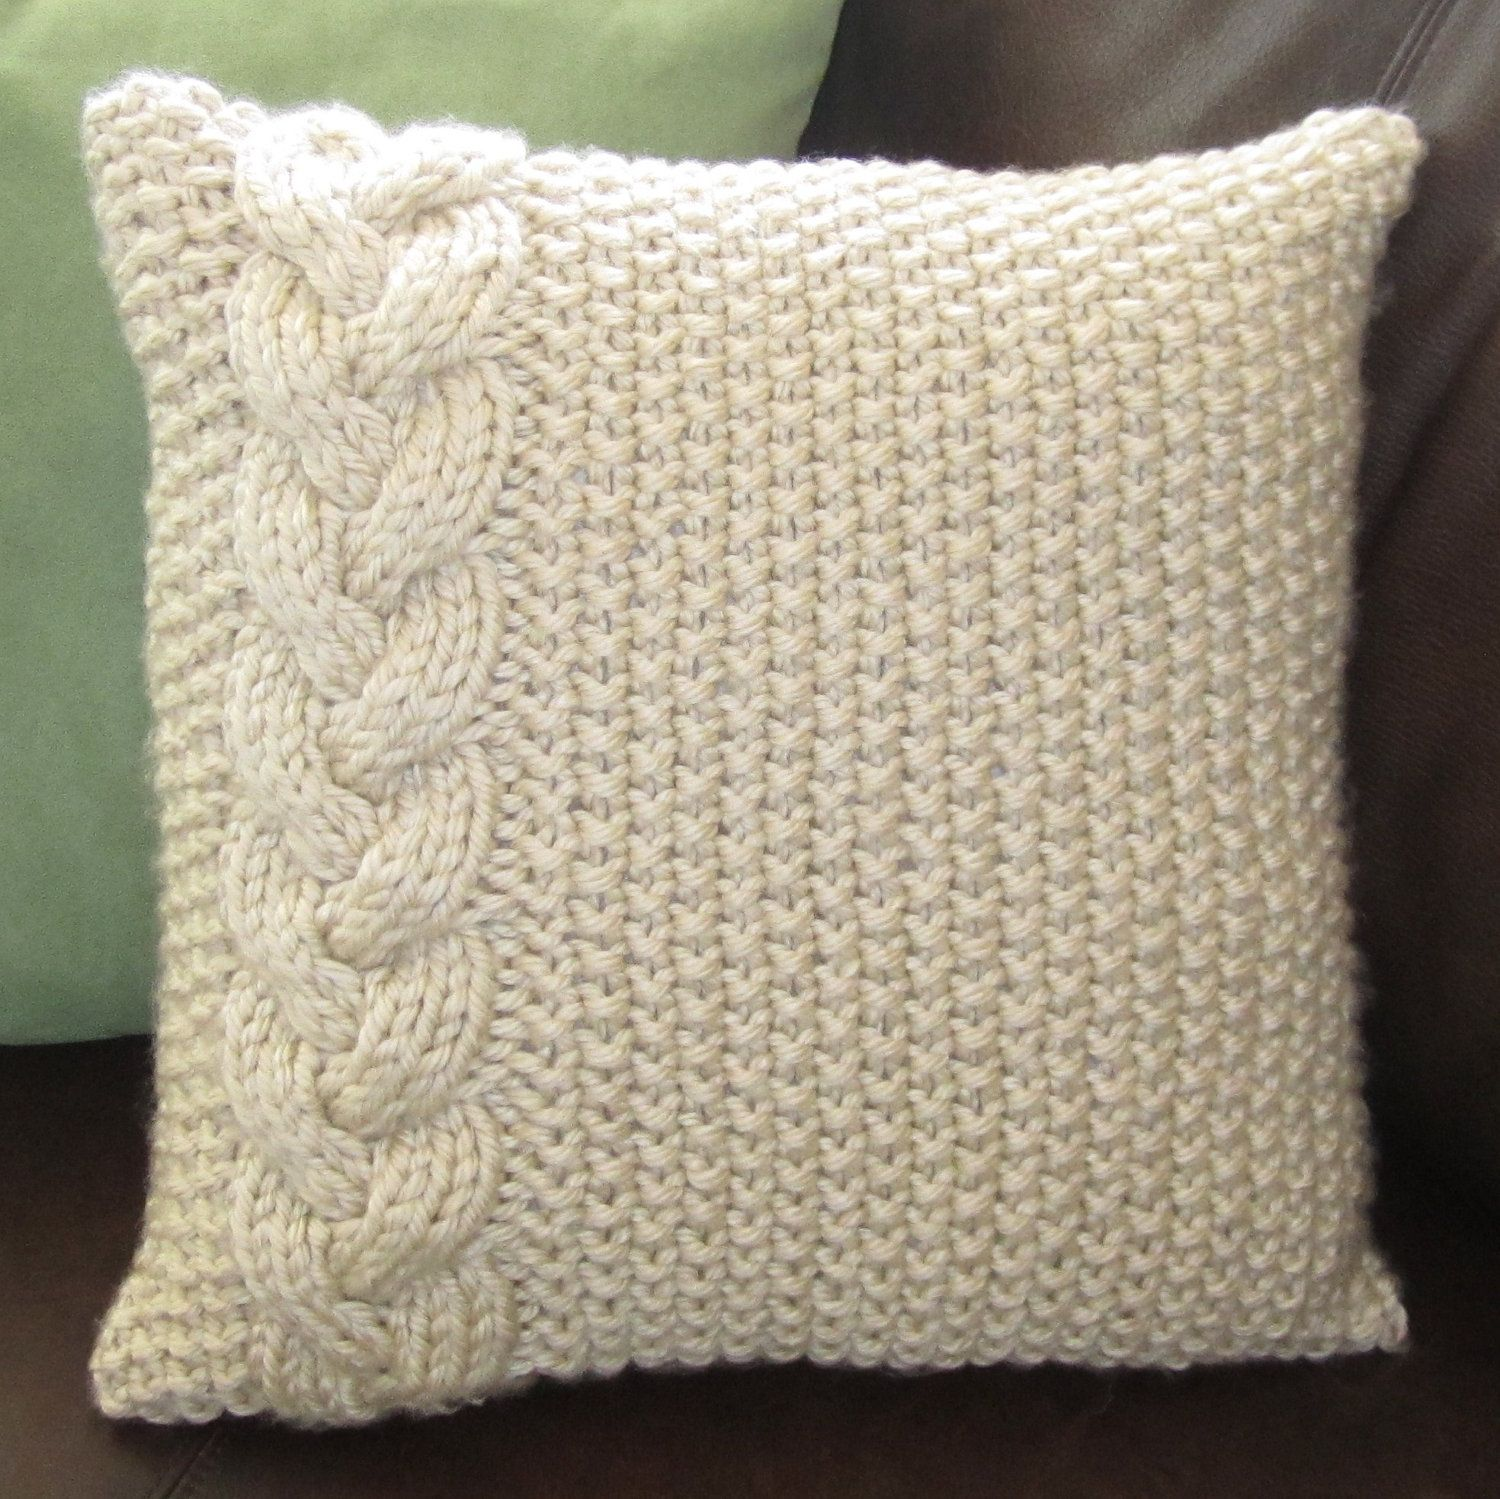 Knitting Pillows : Braided cable chunky hand knit pillow cover